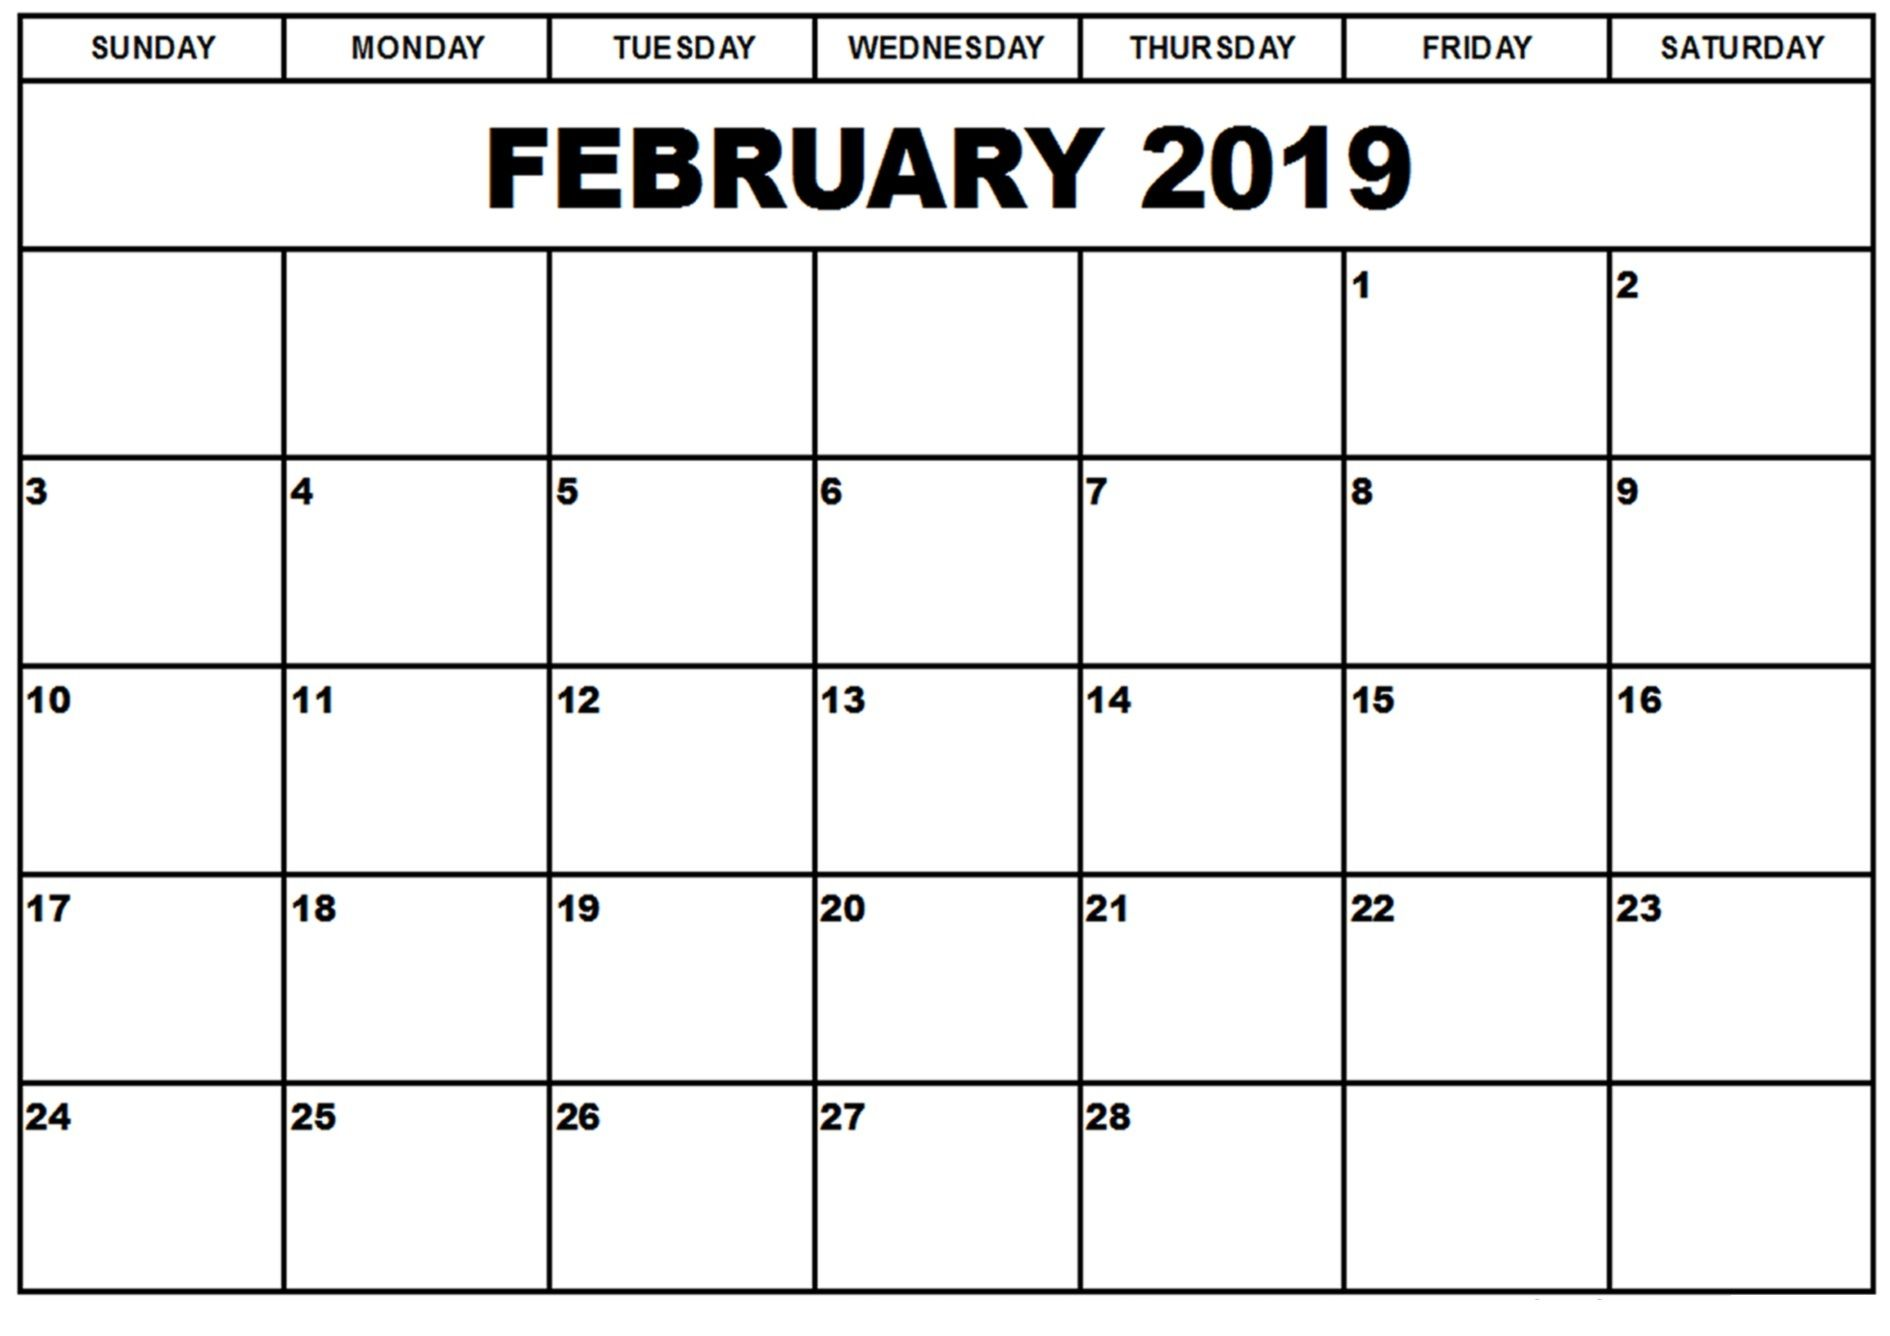 Word Calendar Template February 2019 2019 February Printable Word calendar | February 2019 Printable